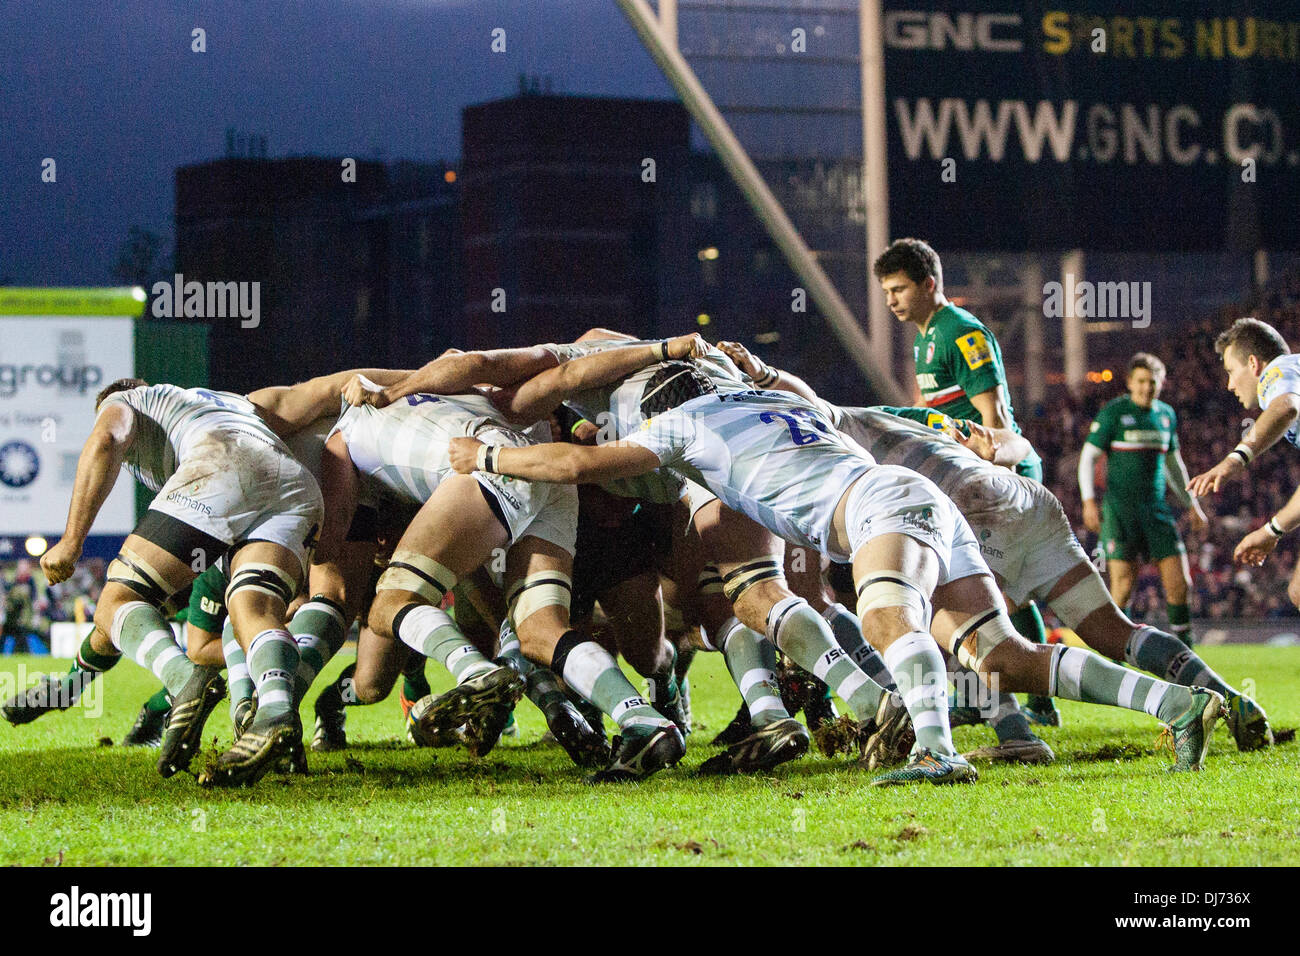 Leicester, UK. 23rd Nov, 2013. A view of one of a number of reset scrums on the London Irish line during the Aviva Premiership Rugby Union fixture between Leicester Tigers and London Irish from Welford Road. The Leicester Tigers scrum was superior and eventually a penalty try was awarded. Credit:  Action Plus Sports/Alamy Live News - Stock Image